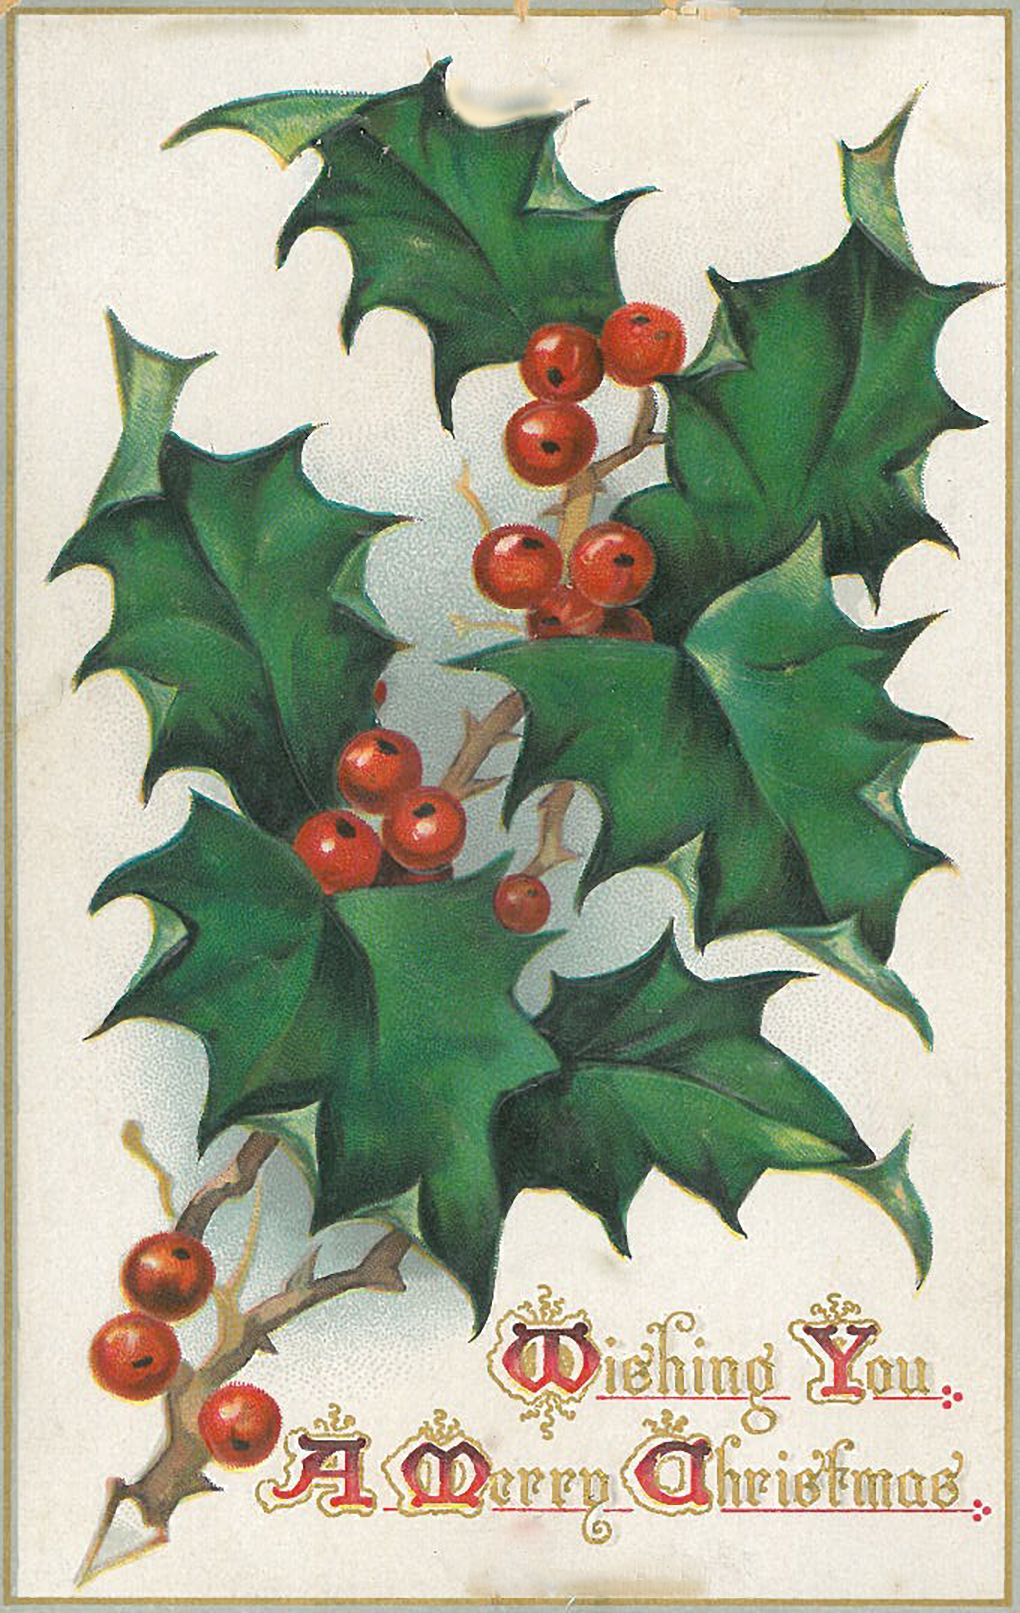 Vintage christmas cards american greetings archives pinterest vintage christmas cards american greetings archives m4hsunfo